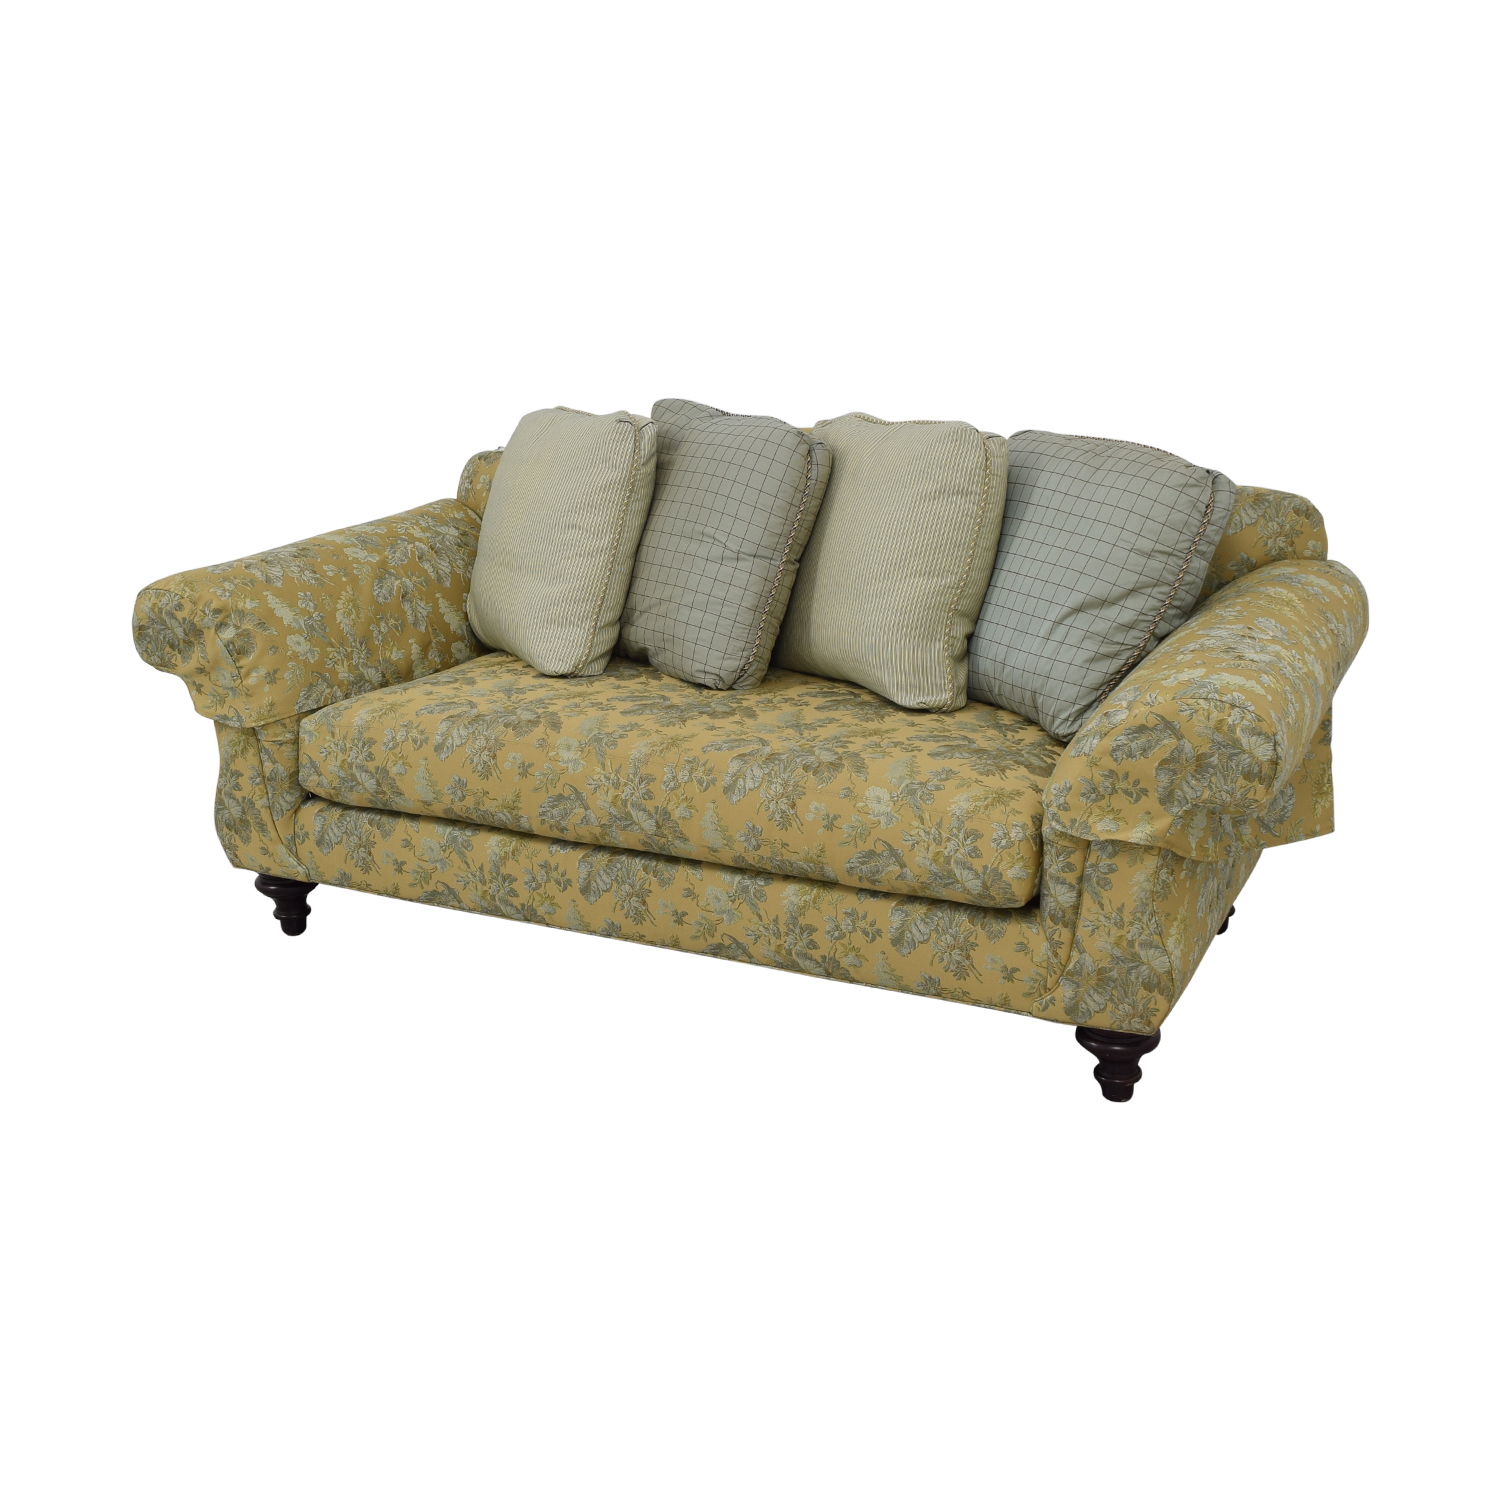 Vanguard Furniture Vanguard Furniture Sofa with Down-Filled Pillows discount